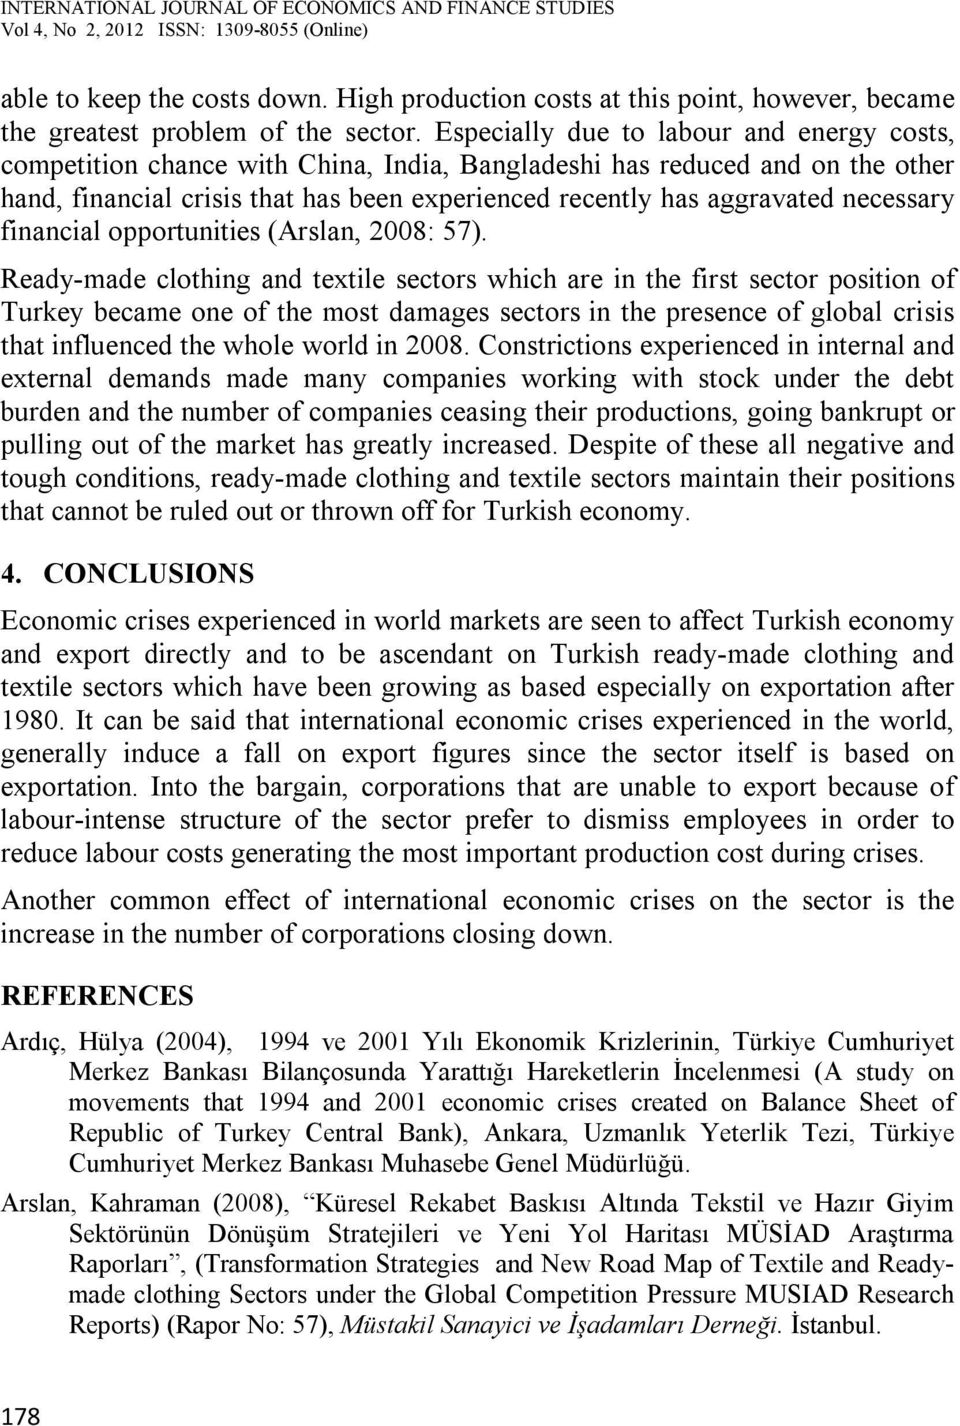 necessary financial opportunities (Arslan, 2008: 57).